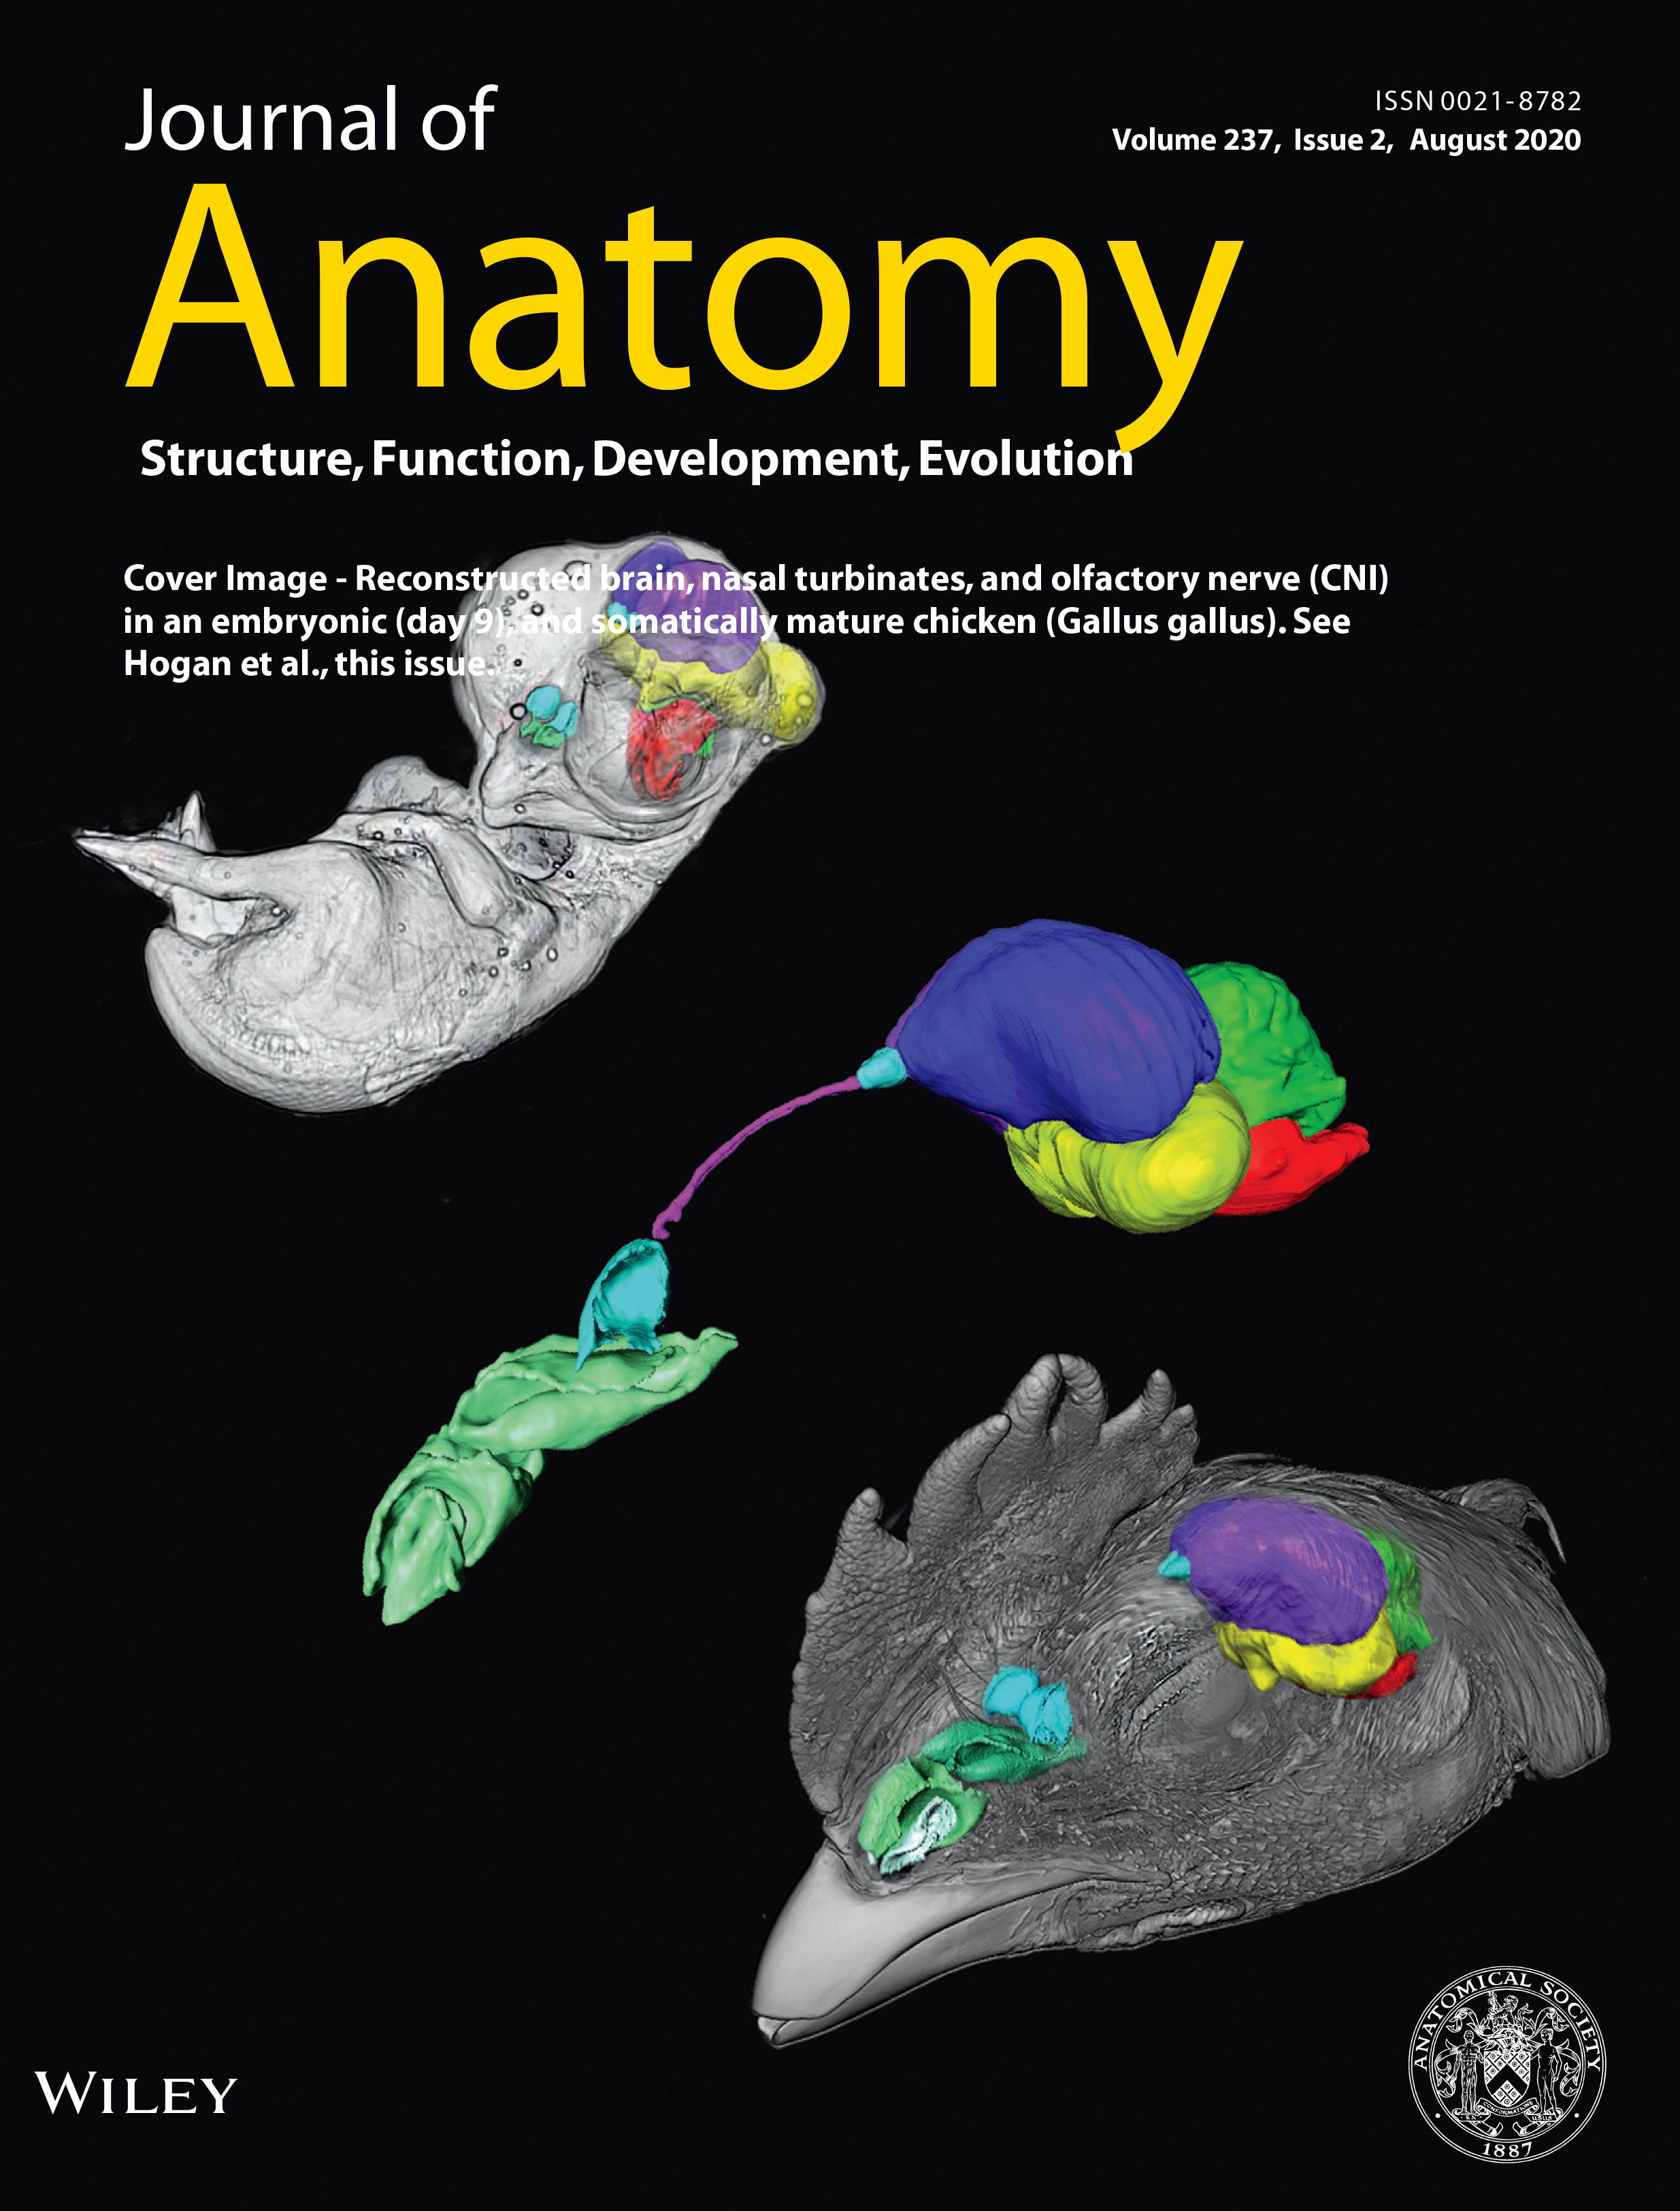 Bever Lab paper led by Aneila Hogan awarded Journal Cover